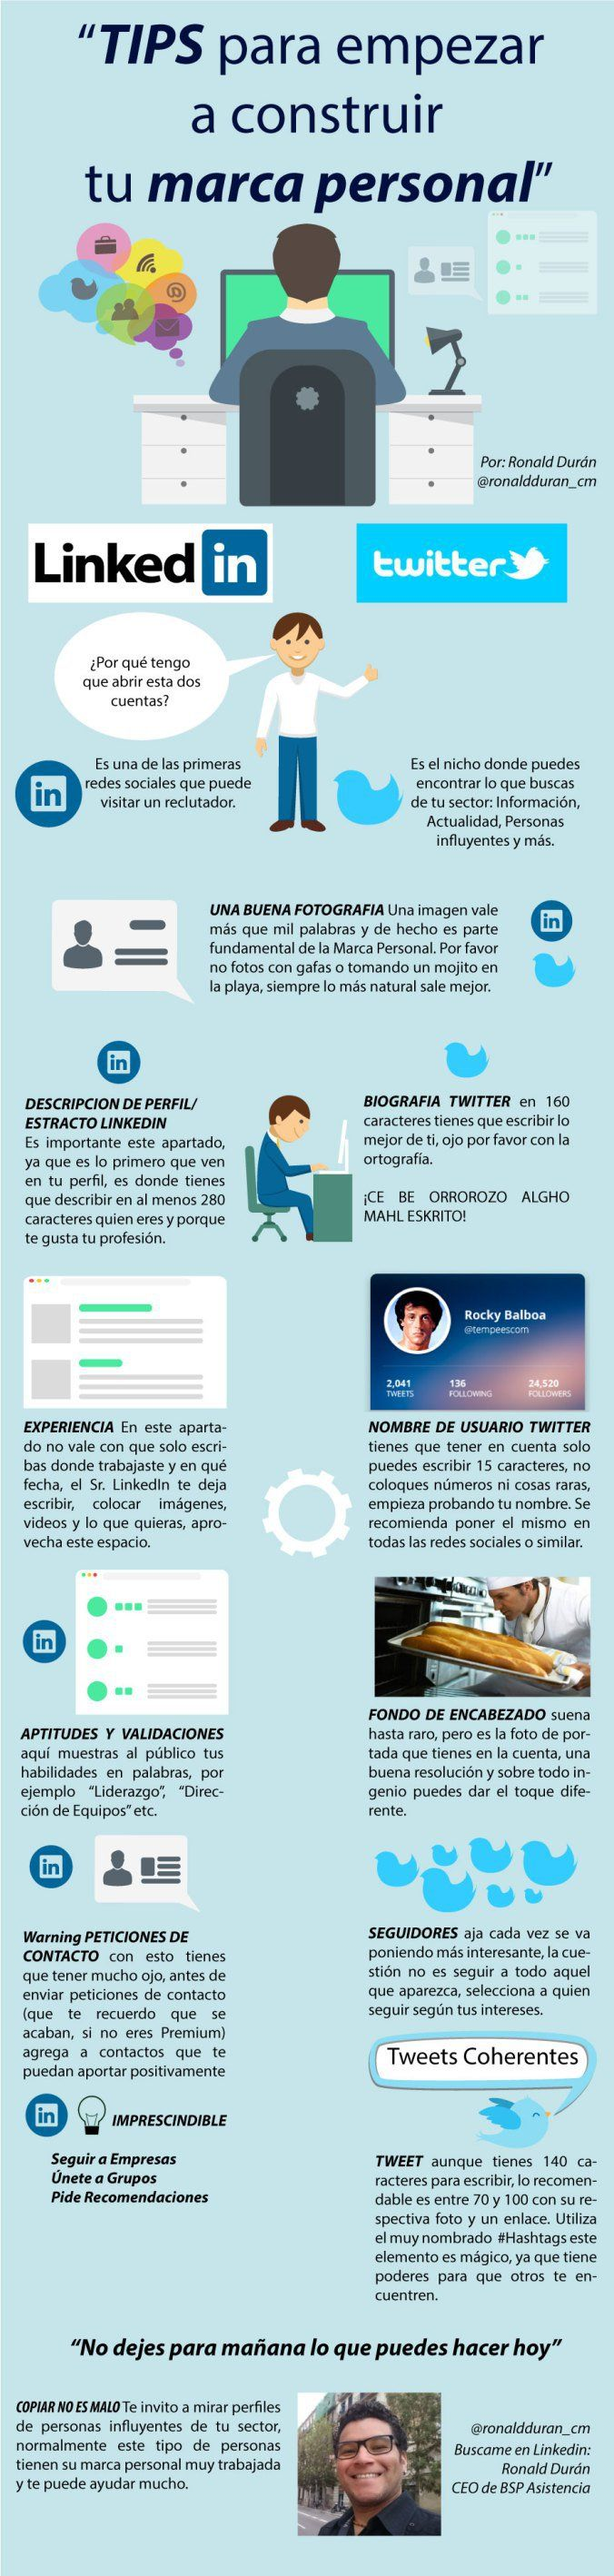 CONSEJOS PARA CONSTRUIR TU MARCA PERSONAL #INFOGRAFIA #INFOGRAPHIC #MARKETING